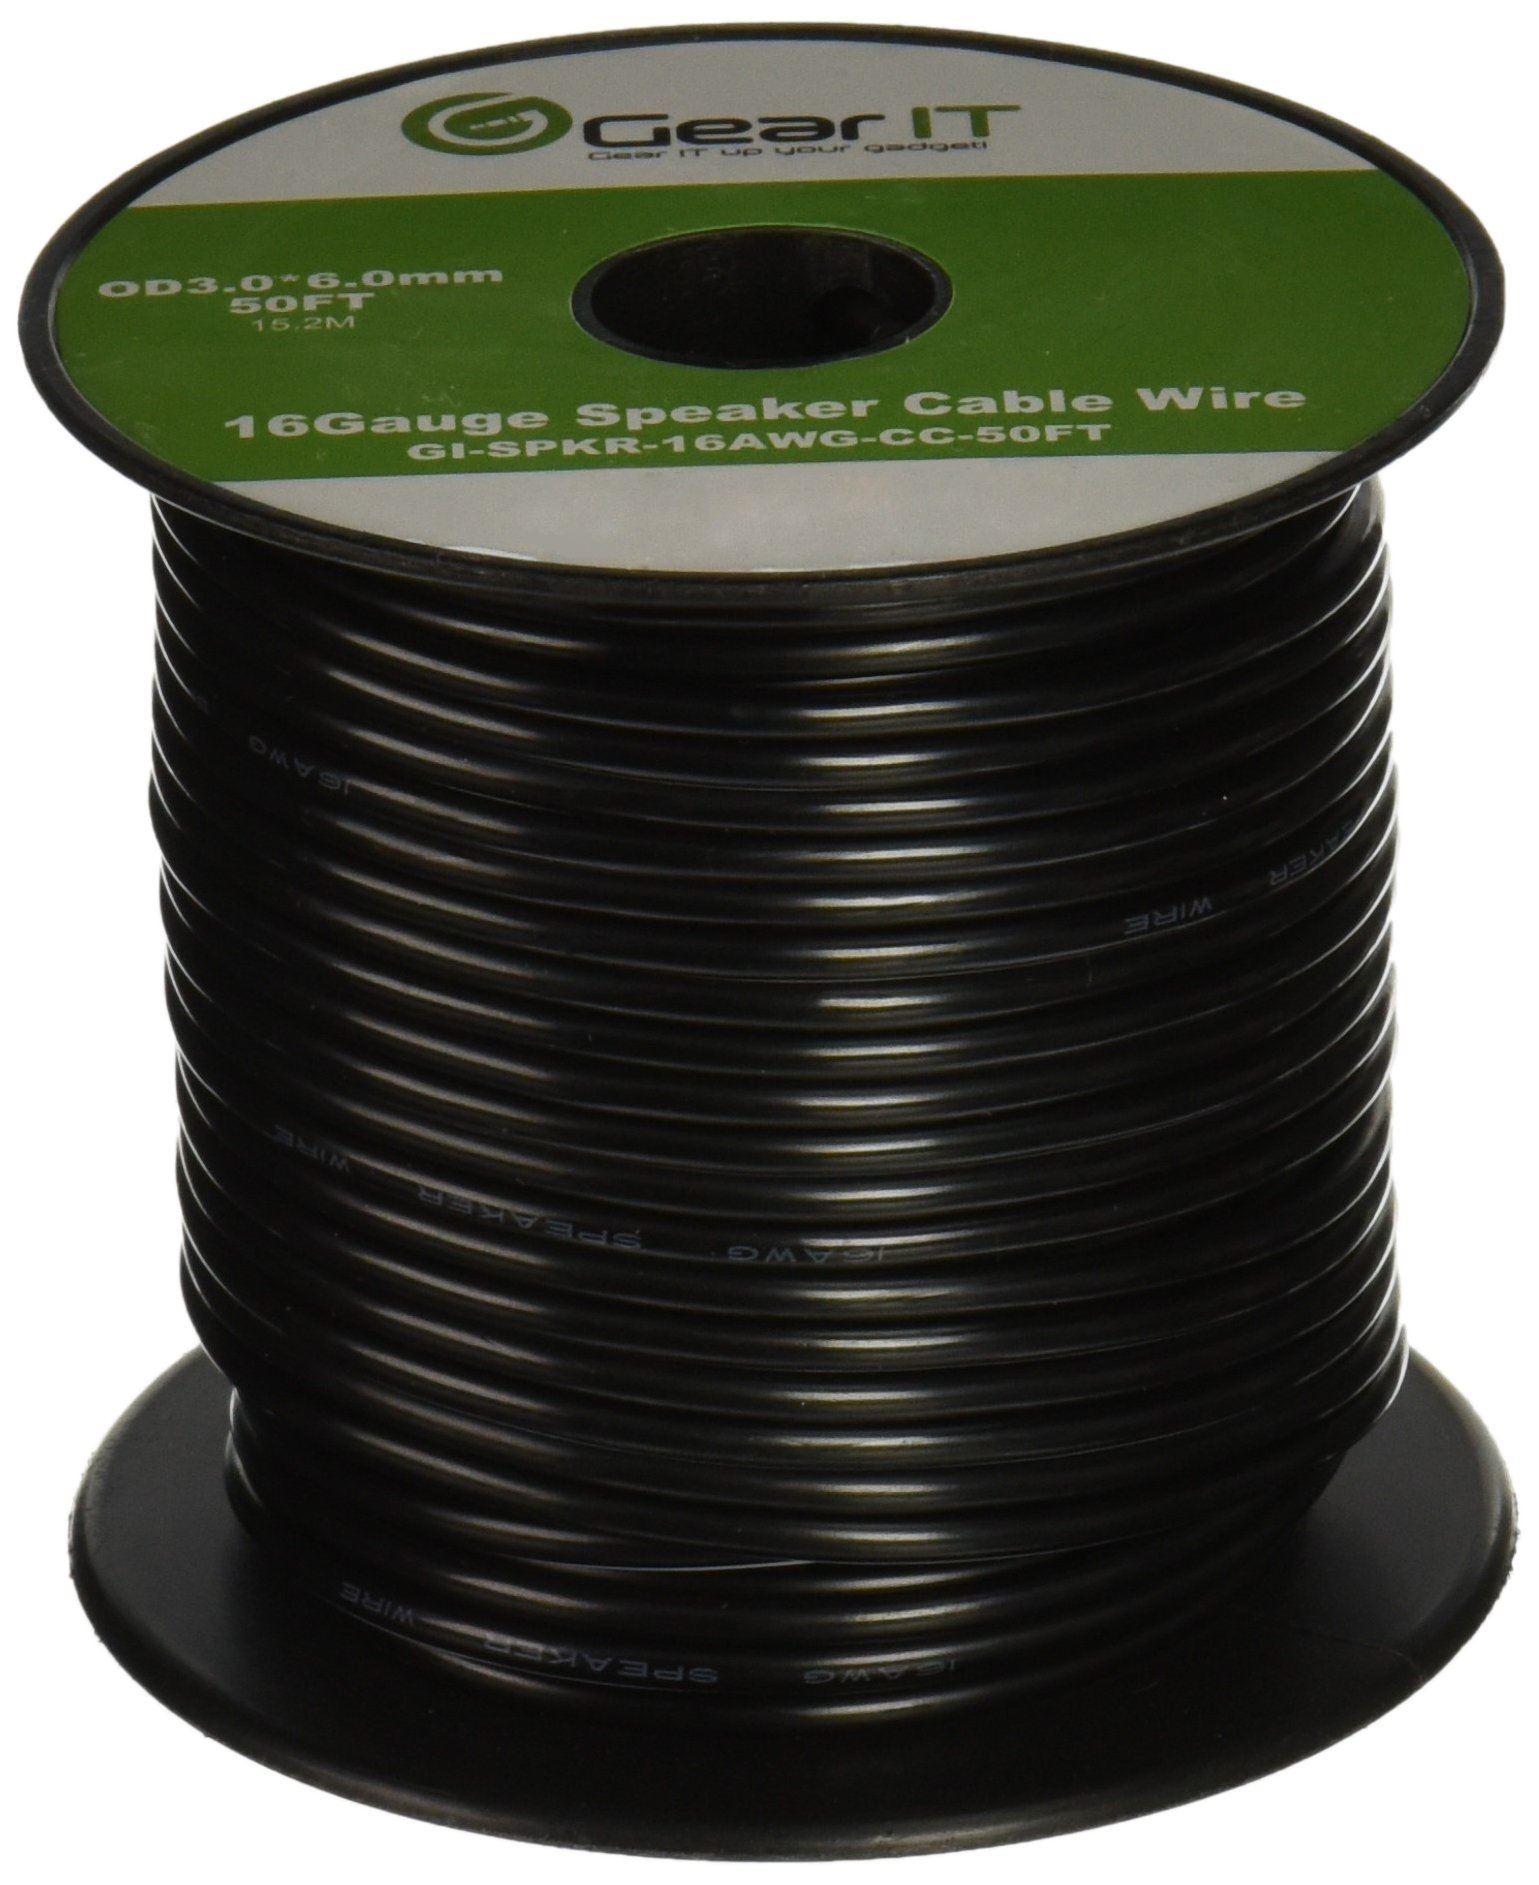 hight resolution of get quotations 16awg speaker wire gearit pro series 16 gauge speaker wire cable 50 feet